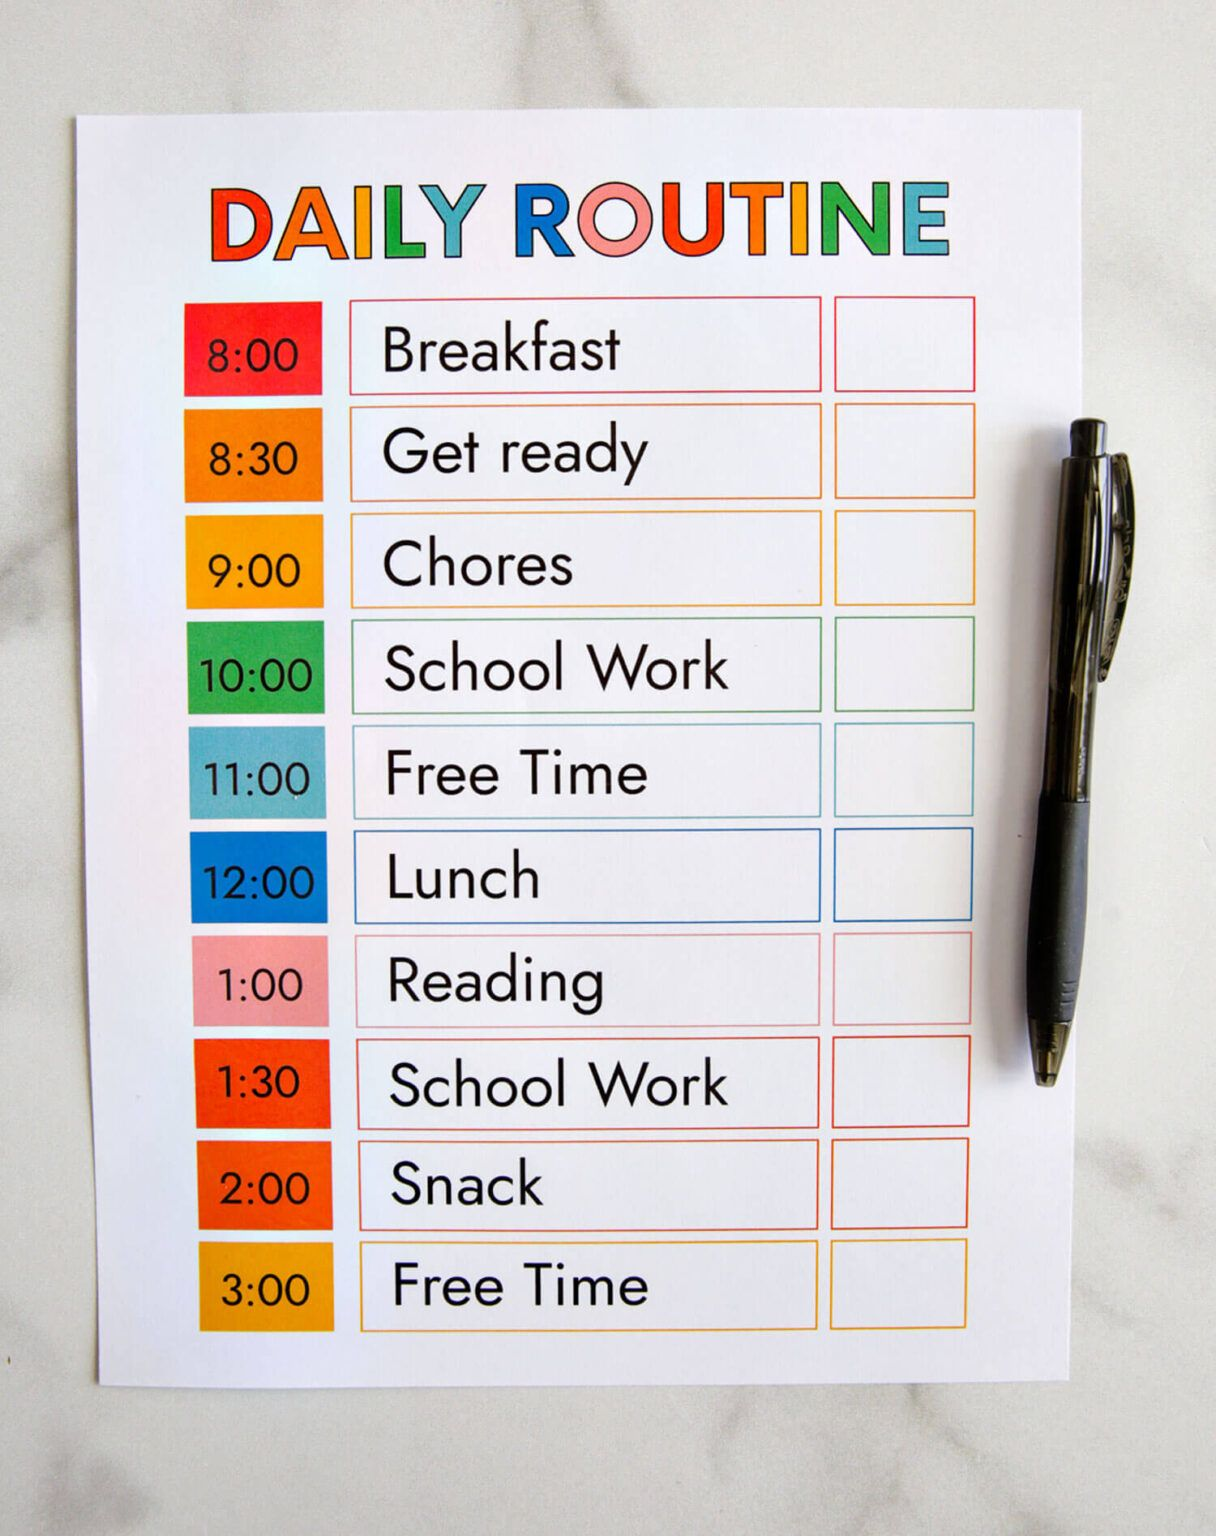 Printable Daily Routine Daily Schedule Template Daily Schedule Kids Homeschool Daily Schedule [ 1536 x 1216 Pixel ]